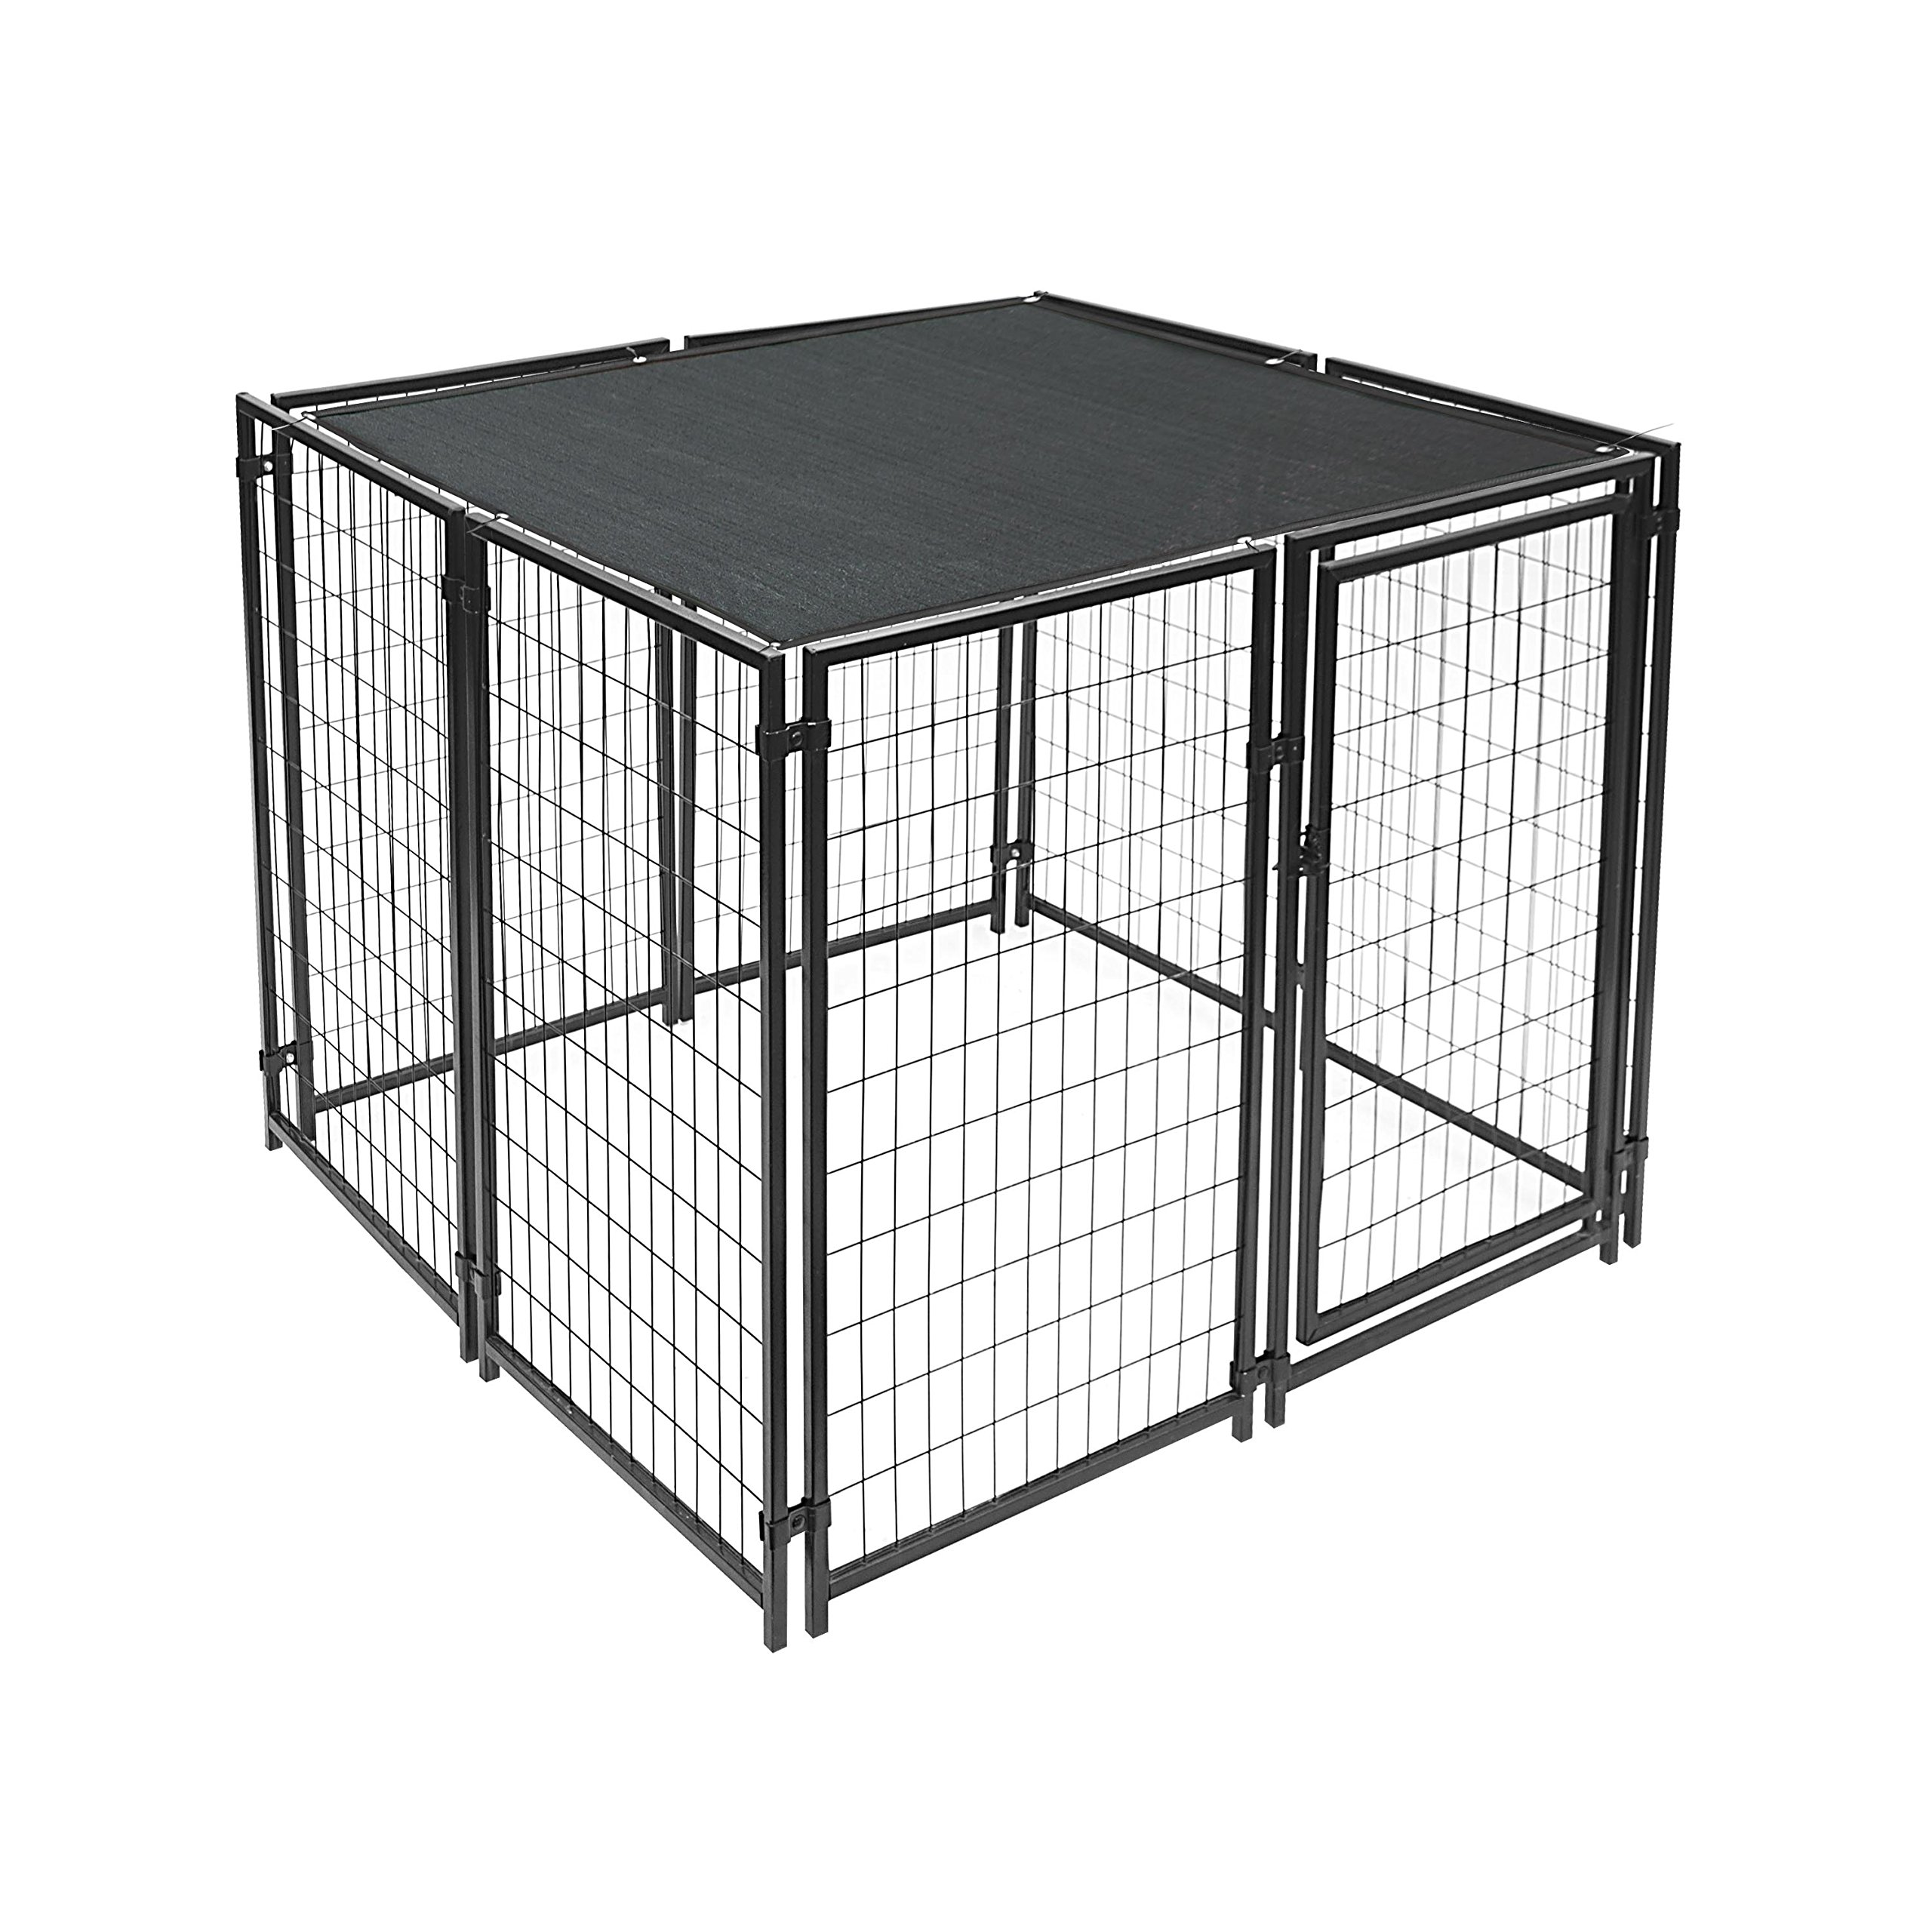 ALEKO PLK0505BK Feet Pet Dog Kennel Sun Shade Cover Weather Protection with Aluminum Grommets 5 x 5 Feet Black